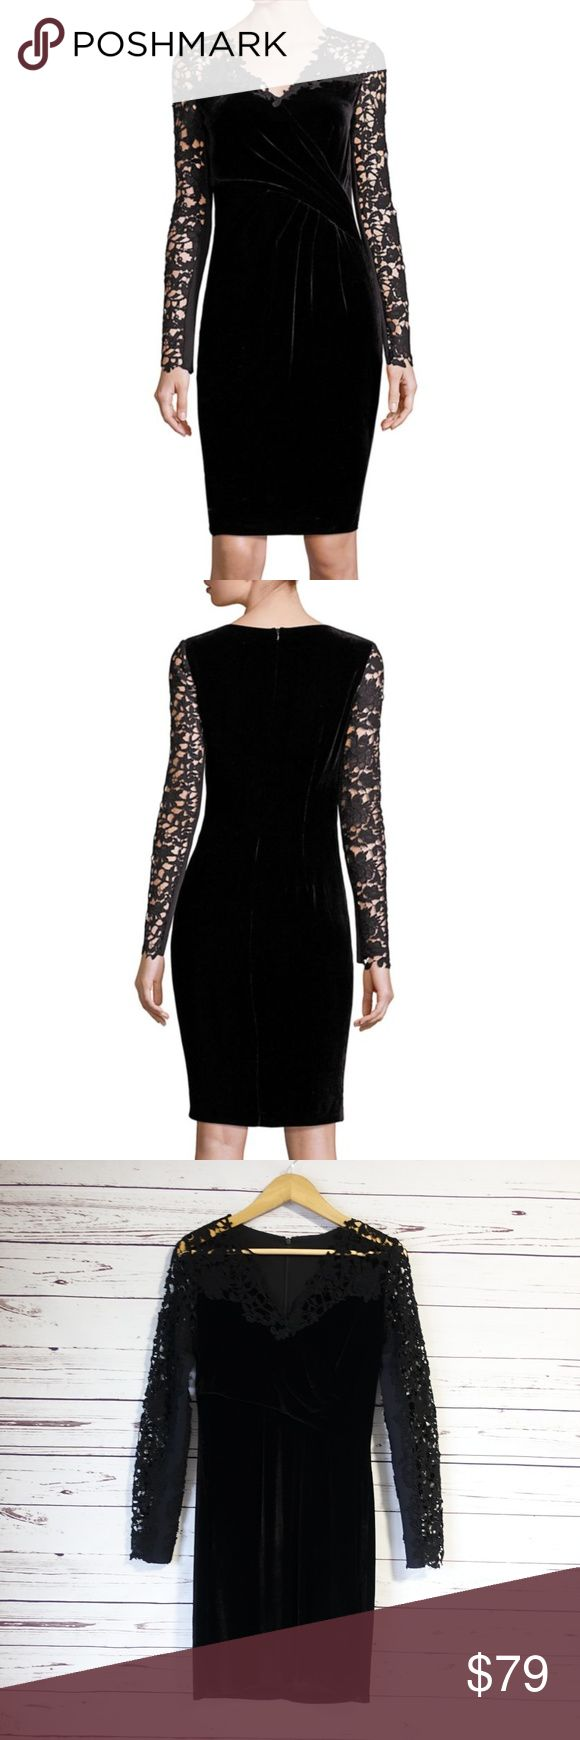 """Elie Tahari Blakely Velvet & Lace Dress Size 2 Sheer lace sleeves define ruched velvet dress V-neck Long sleeves Ruched detail Concealed back zip closure About 39"""" from shoulder to hem Rayon/silk Dry clean New with tags #131/1000. 14oz. Elie Tahari Dresses"""